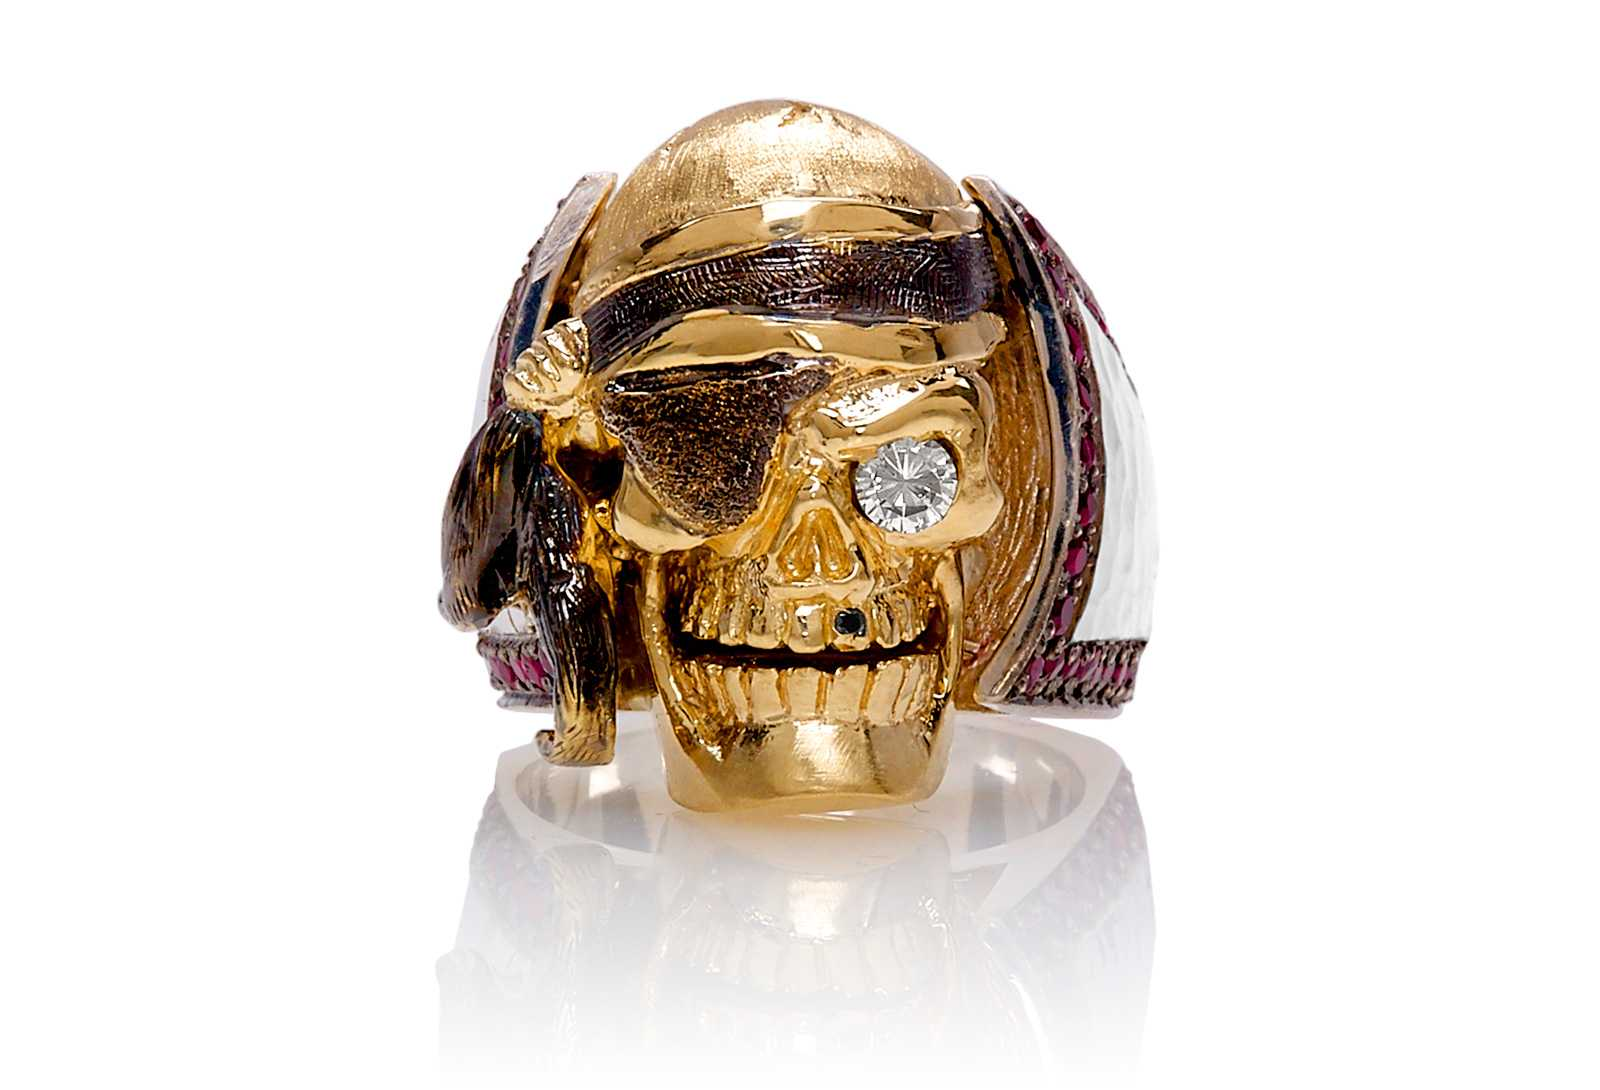 RG1040YGSIL Ol' Jack Danny Skull Ring (Front View) in Yellow/Rose Gold and Silver, with Rubies and Black/White Diamonds, designed by Steve Soffa